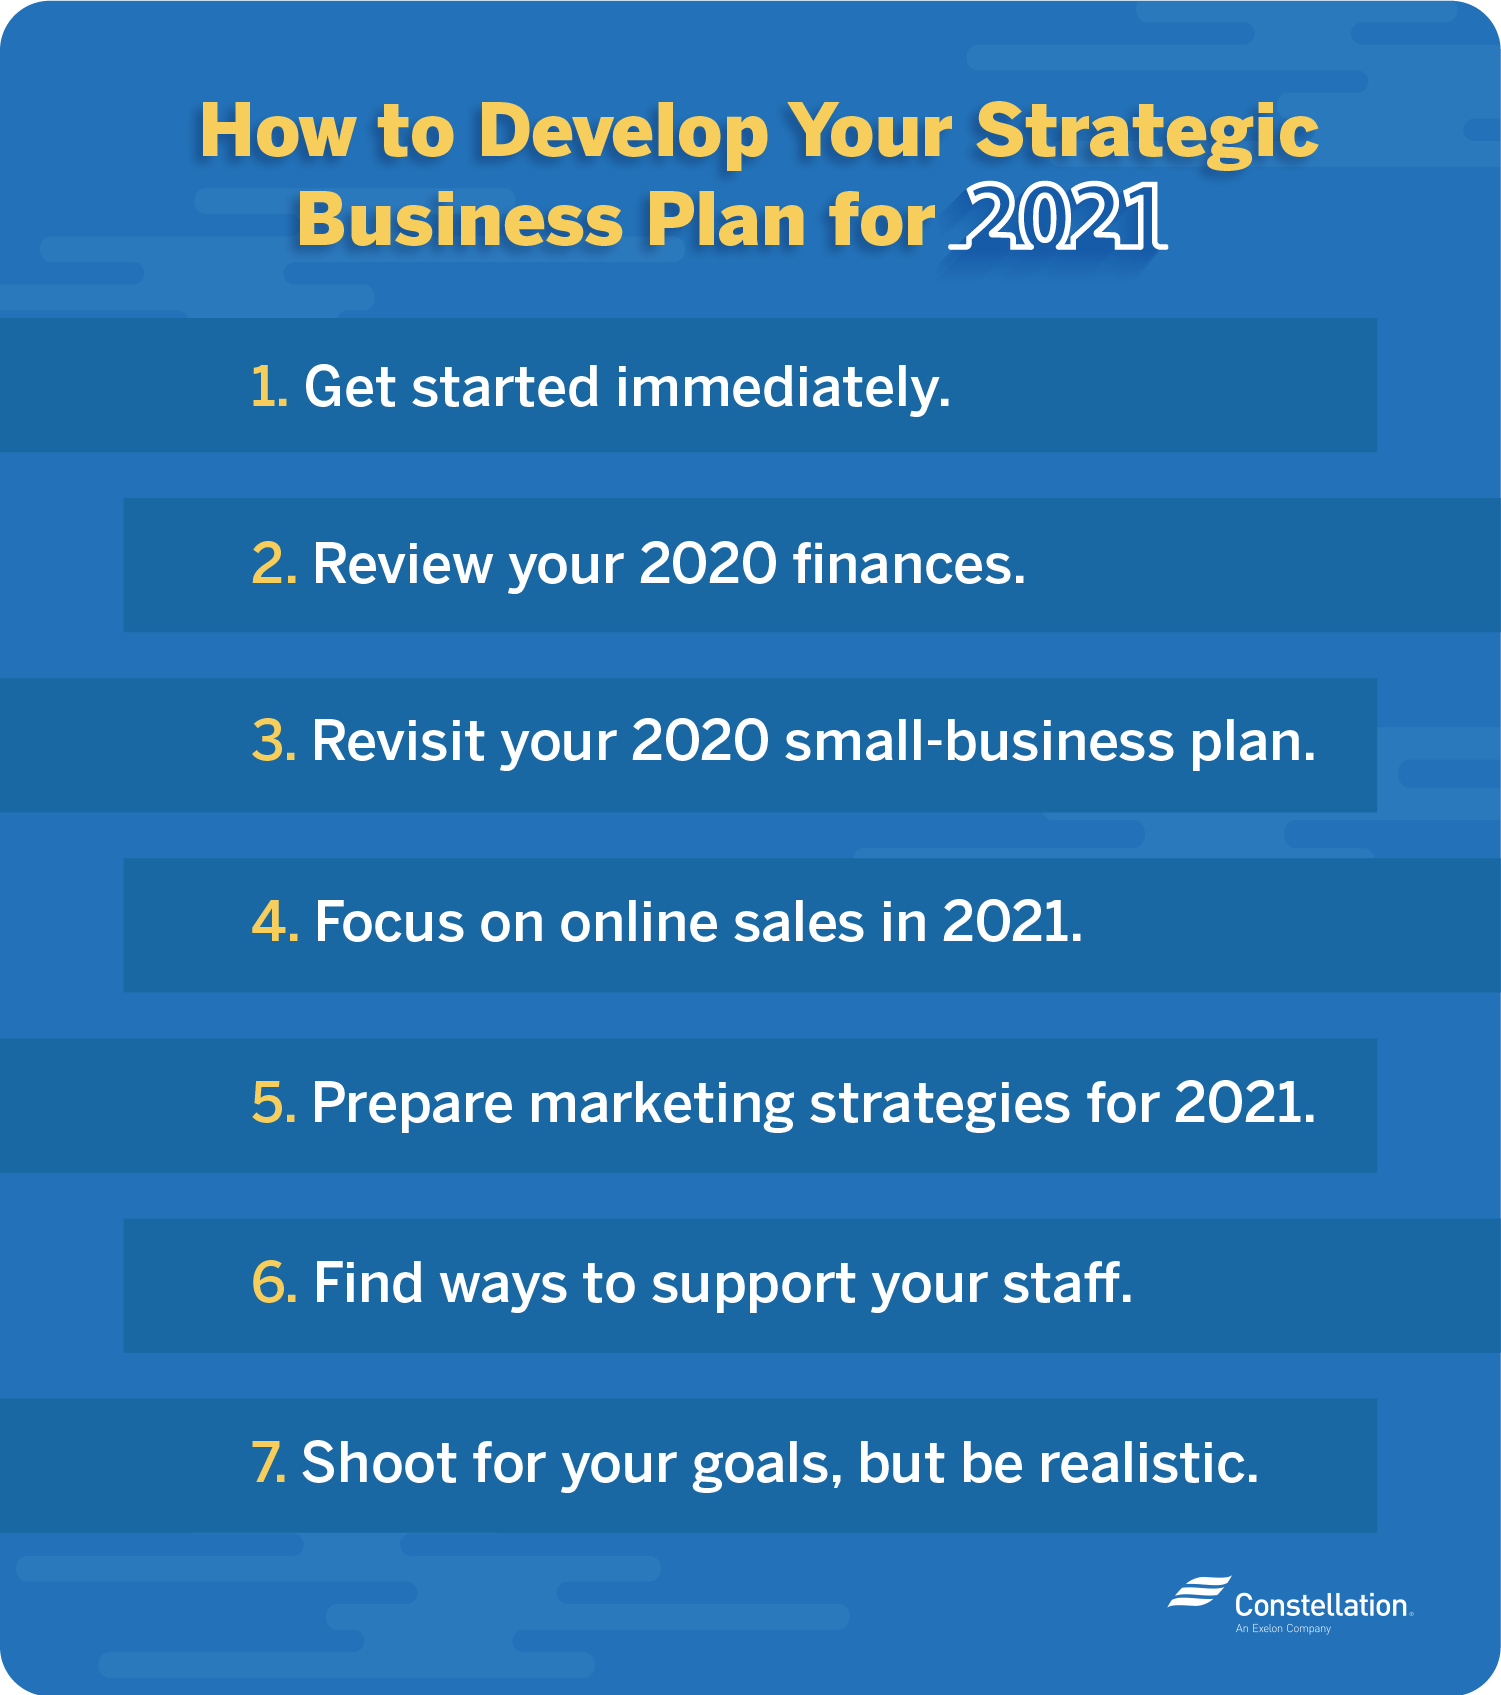 Developing a strategic business plan for 2021